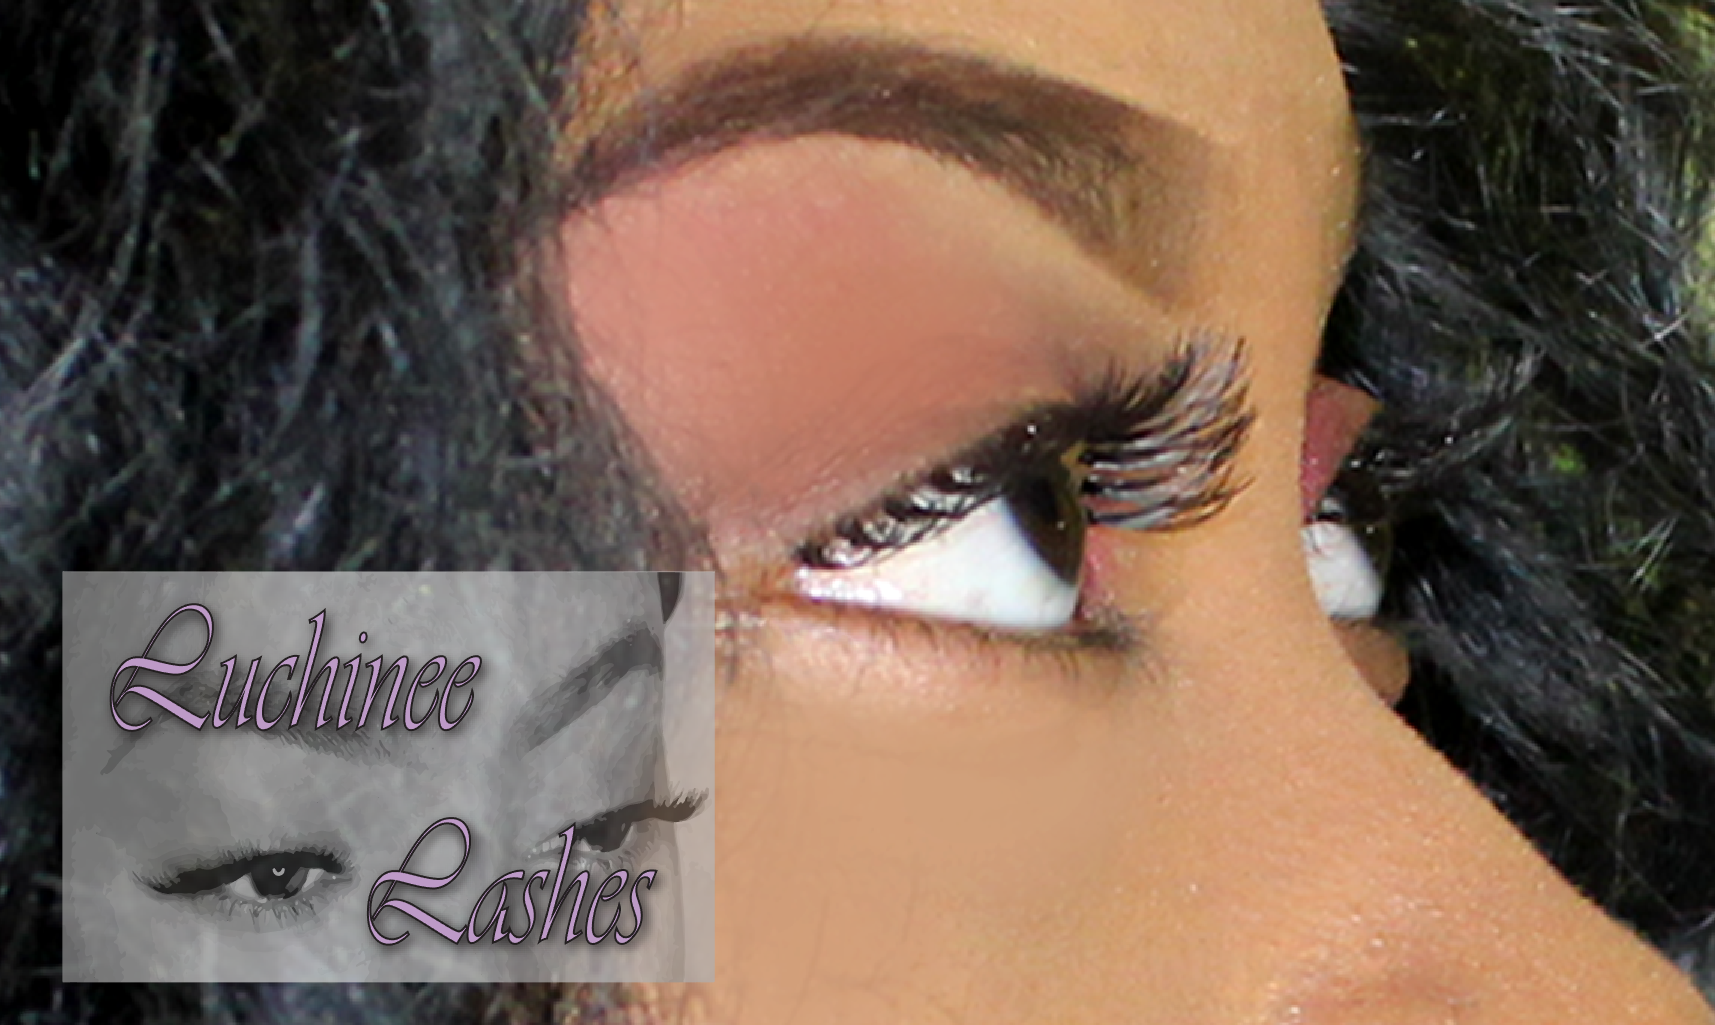 Luchinee Lashes 50% OFF